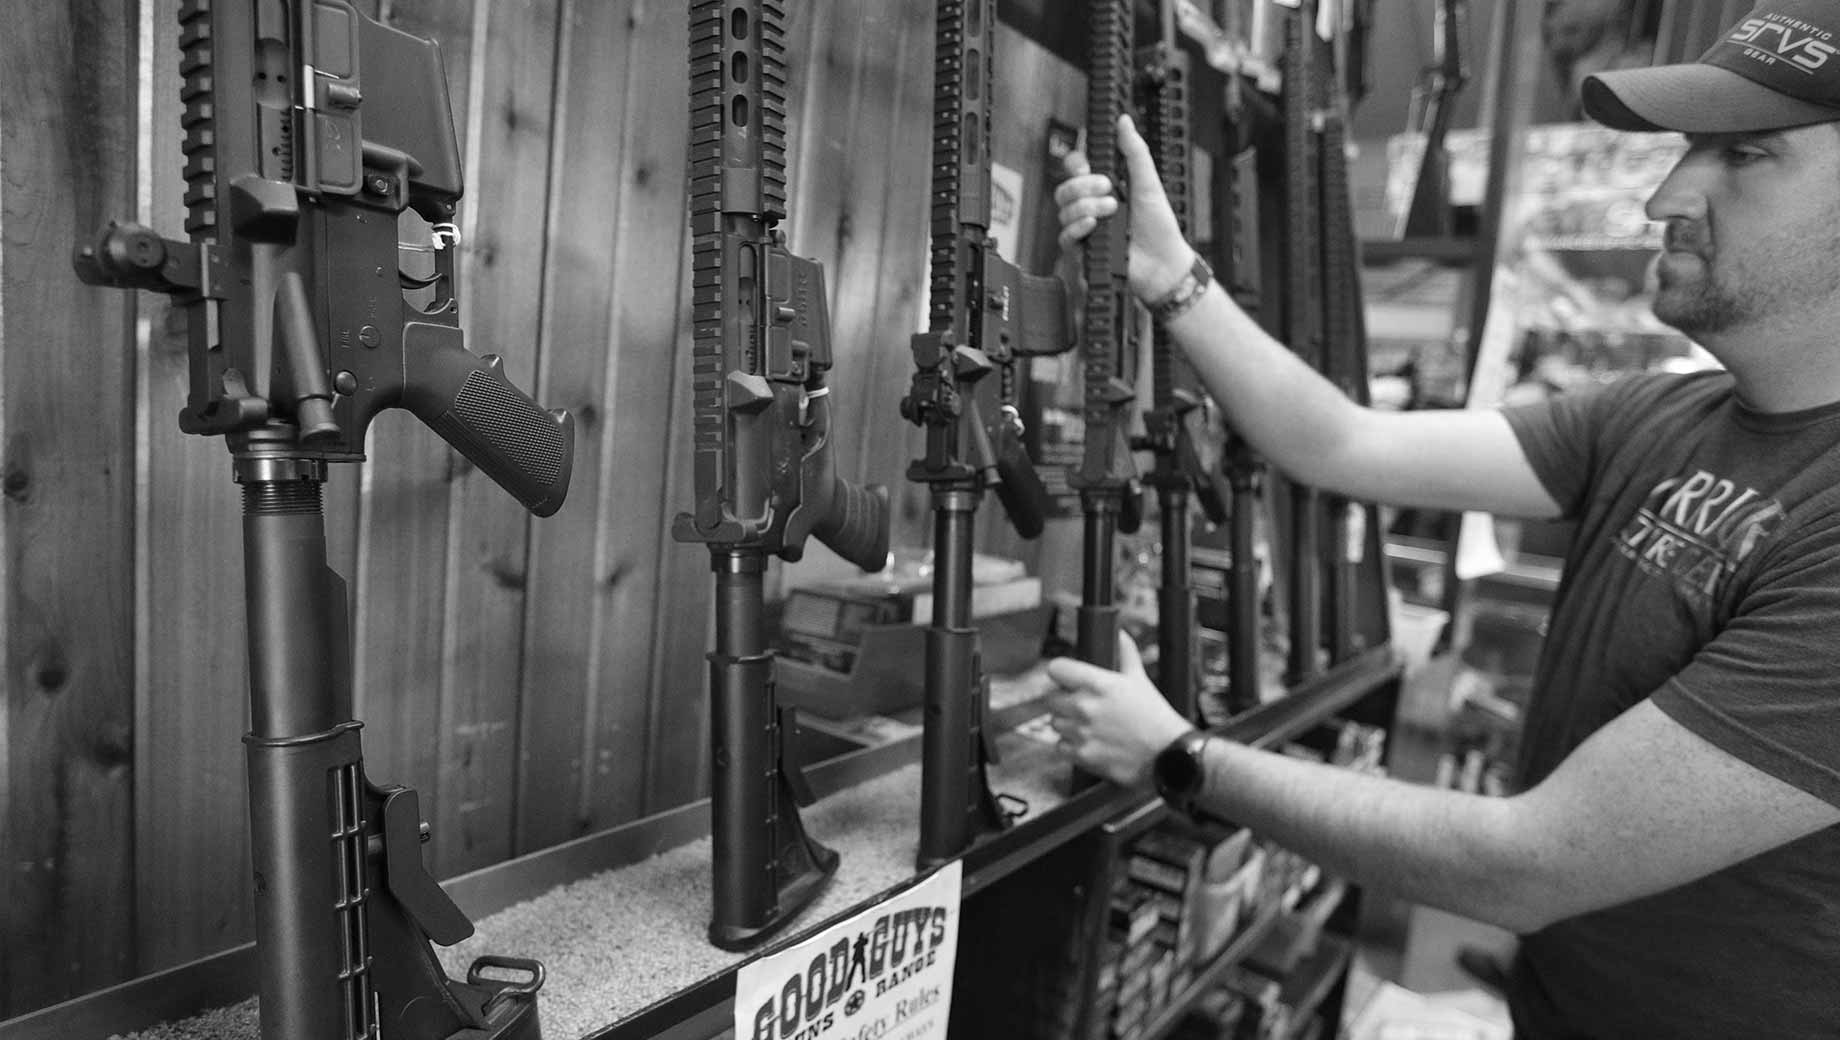 Snapshot: Majority in U.S. Now Oppose Ban on Assault Rifles